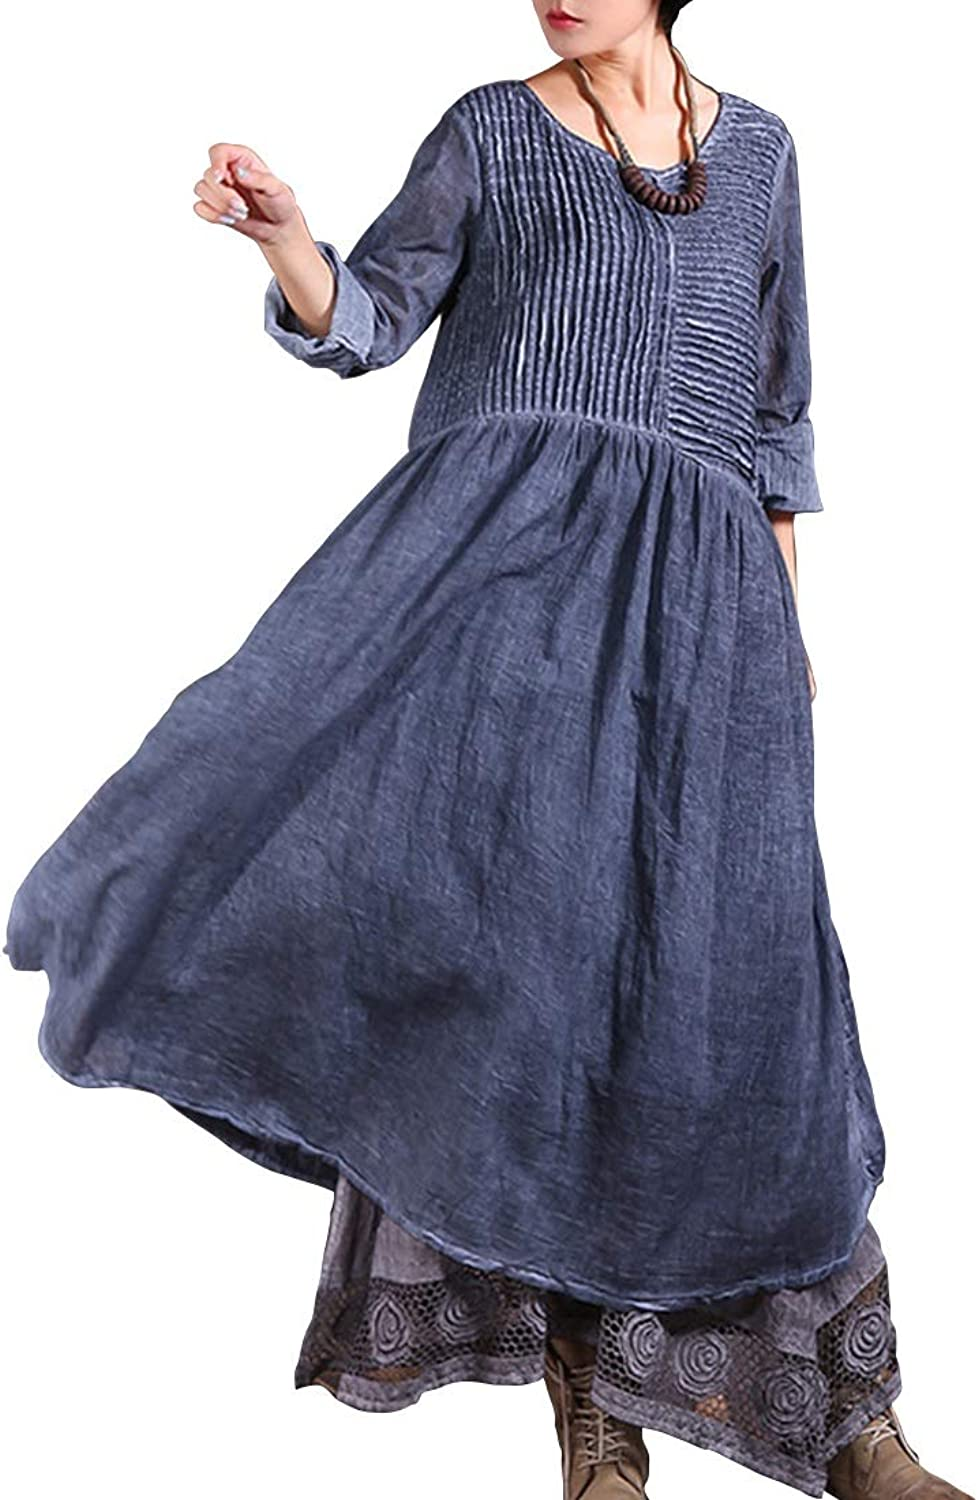 CEFULTY Women's Vintage Long Sleeve Solid color Round Neck Pleated Midi Dress with Pockets (color   bluee, Size   One Size)